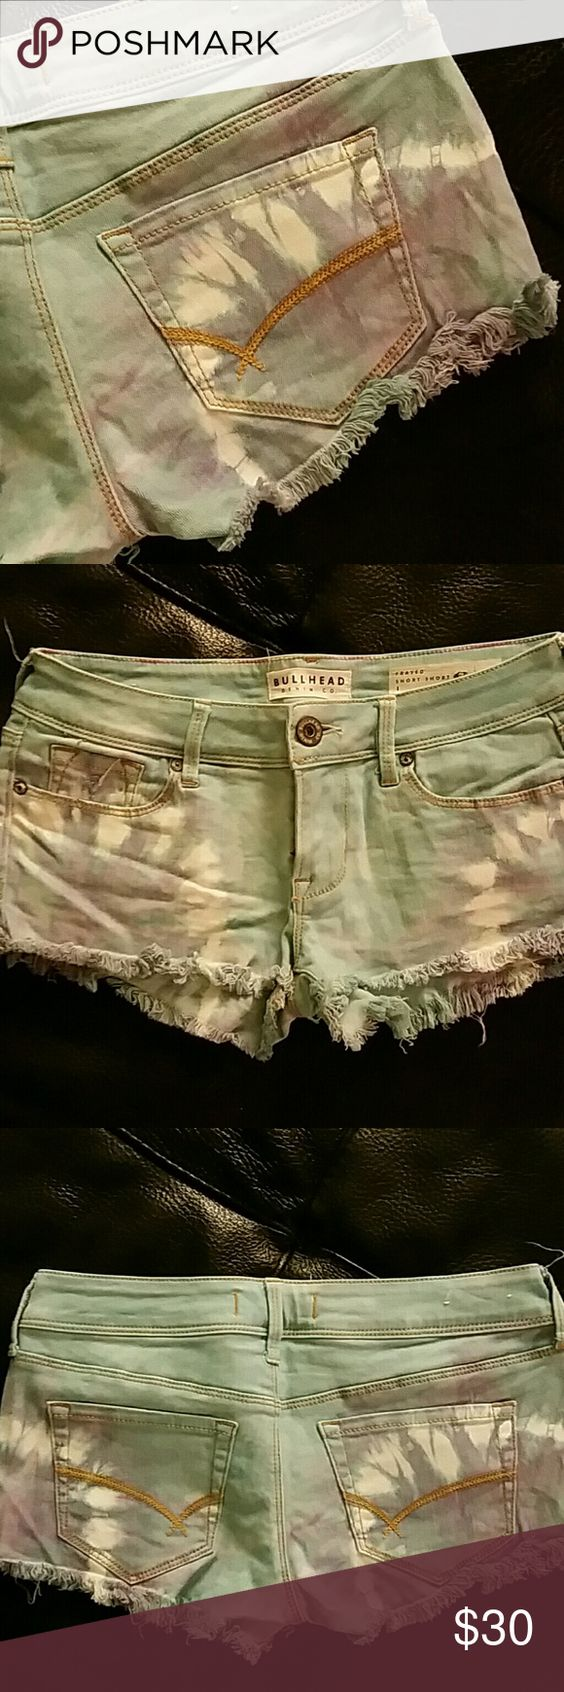 NWOT Bullhead tie dye shorts NWOT light blue jean shorts. Tie dyed purple and white. Absolutly love them, just too small so I recently bought a larger pair I found! 2 front hand pockets with smaller in right side. Two back pockets. Botton and zipper closer. 5 belt loops. 28 inch waist. 1 and half inch inseam. 6 and half inch rise. Smoke/pet free environment. Follow me to c the many upcoming items. Bullhead Shorts Jean Shorts